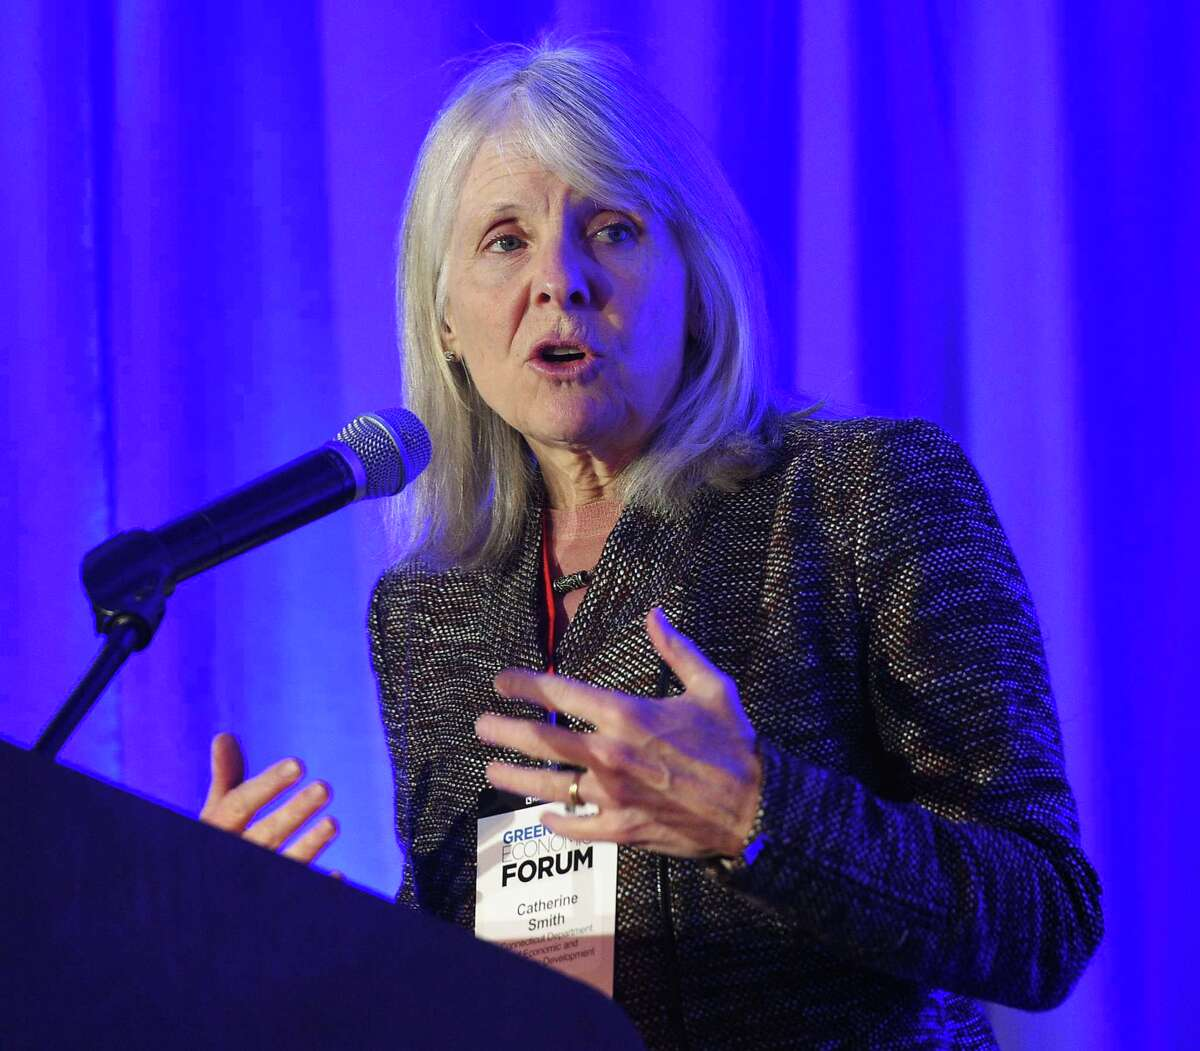 Catherine Smith, commissioner of the Connecticut Department of Economic and Community Development, speaks at the inaugural Greenwich Economic Forum investment conference, at the Delamar Greenwich Harbor, in Greenwich, Conn., on Thursday, Nov. 15, 2018.